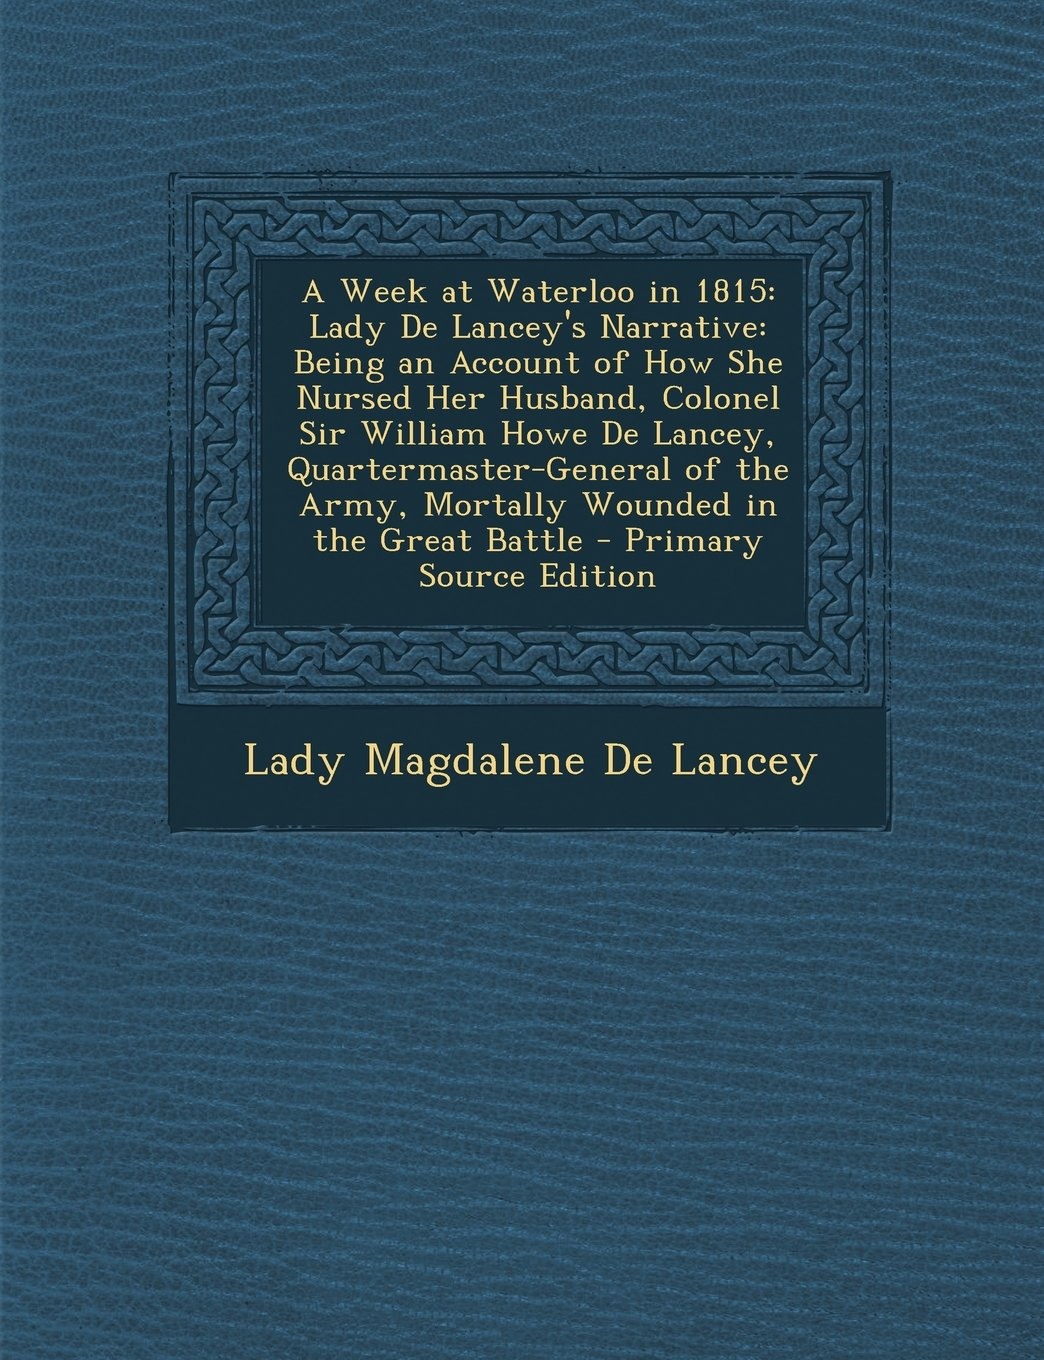 A Week at Waterloo in 1815: Lady de Lancey's Narrative: Being an Account of How She Nursed Her Husband, Colonel Sir William Howe de Lancey, Quarte pdf epub